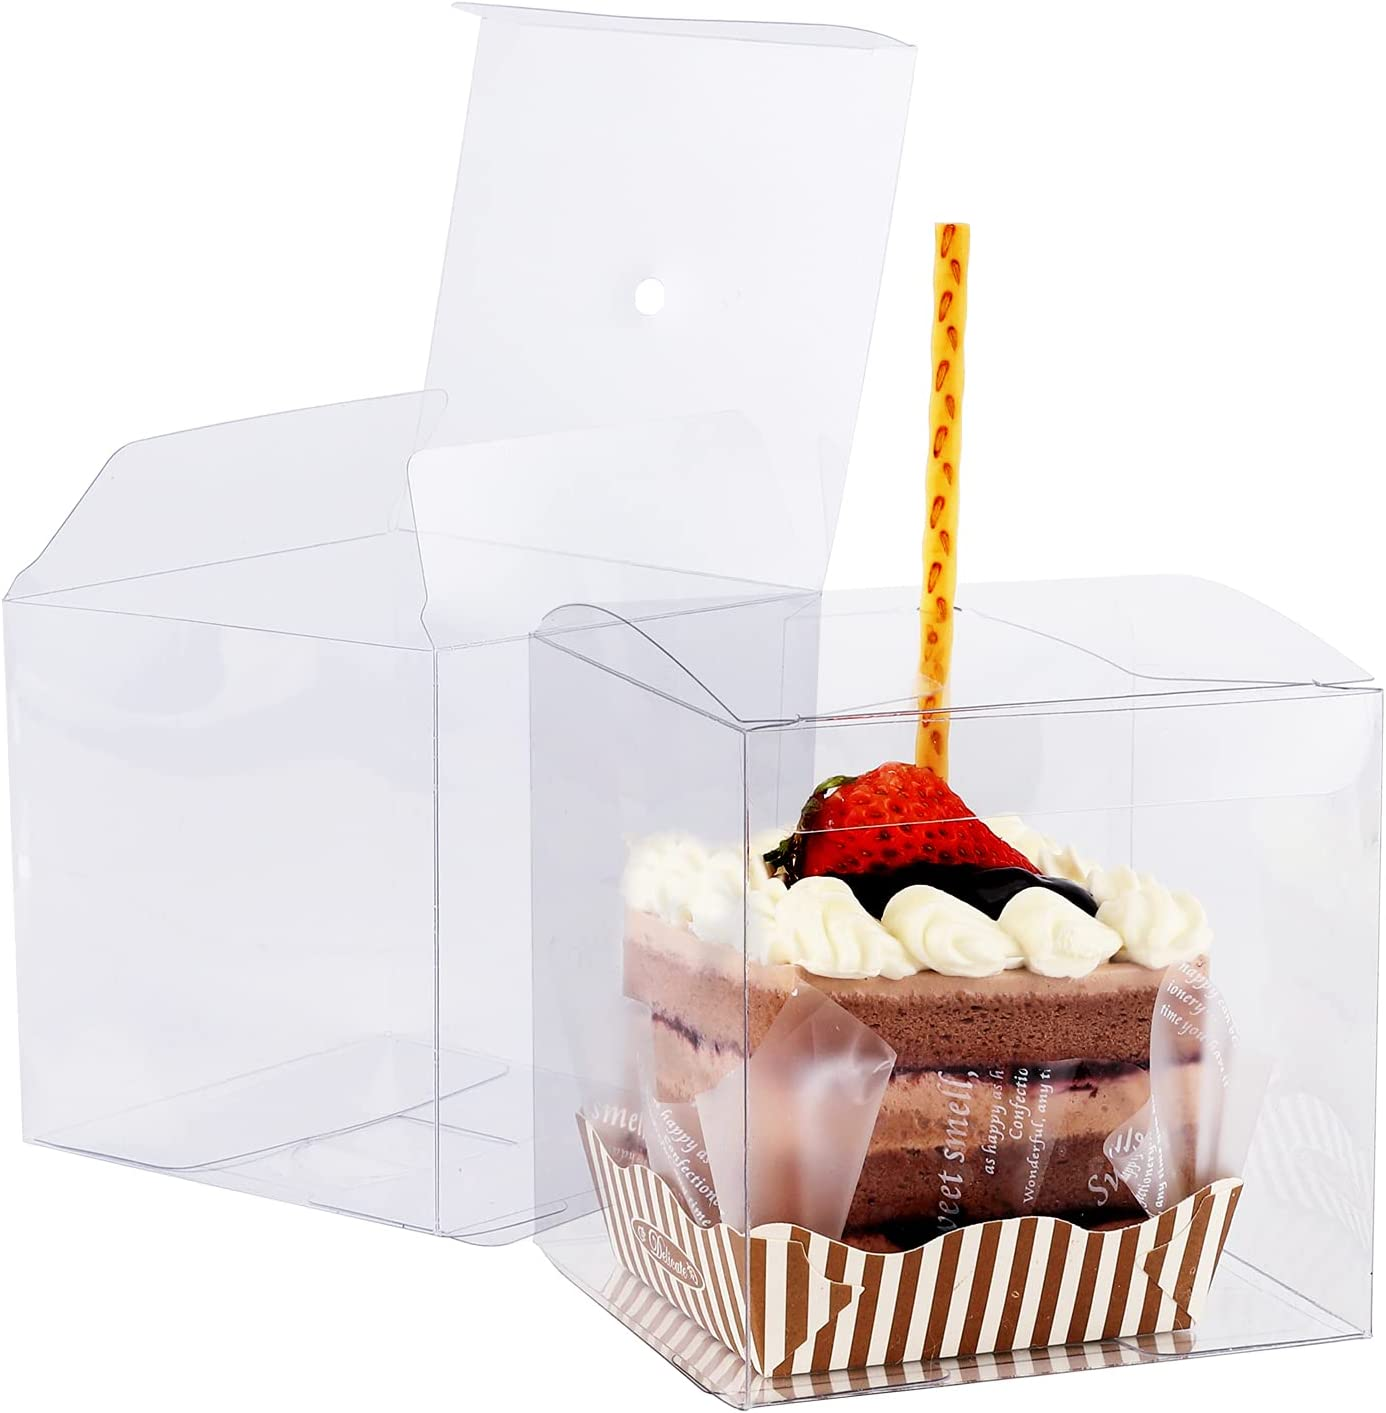 30 Pcs Candy Apple Box with Hole Top, 4 x 4 x 4 inch Plastic Gift Box Square Containers Transparent Packing Box for Macaron Cupcake,Wedding Party, Thanksgiving,Christmas, New Year Party